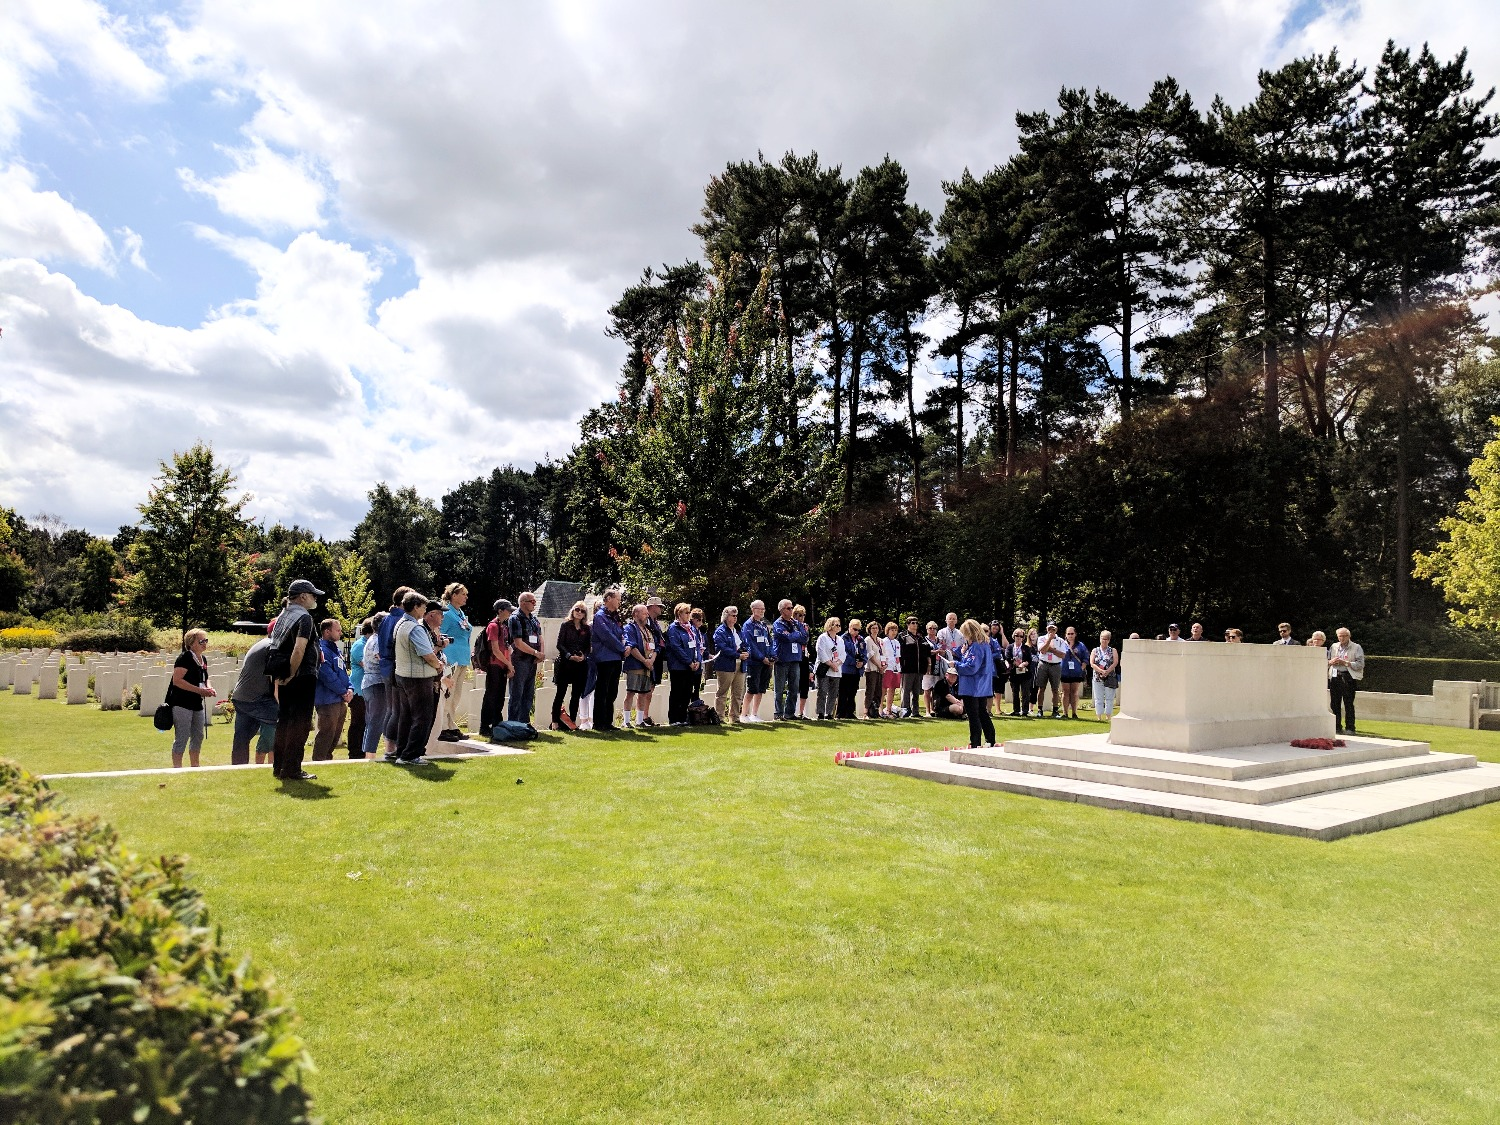 There was something about this day that I will never forget - with the assistance of CWGC's historical team, we traced back family history at the Canadian Section of the Brookwood Military Cemetery, in Surrey, England, before coming together for a private ceremony.